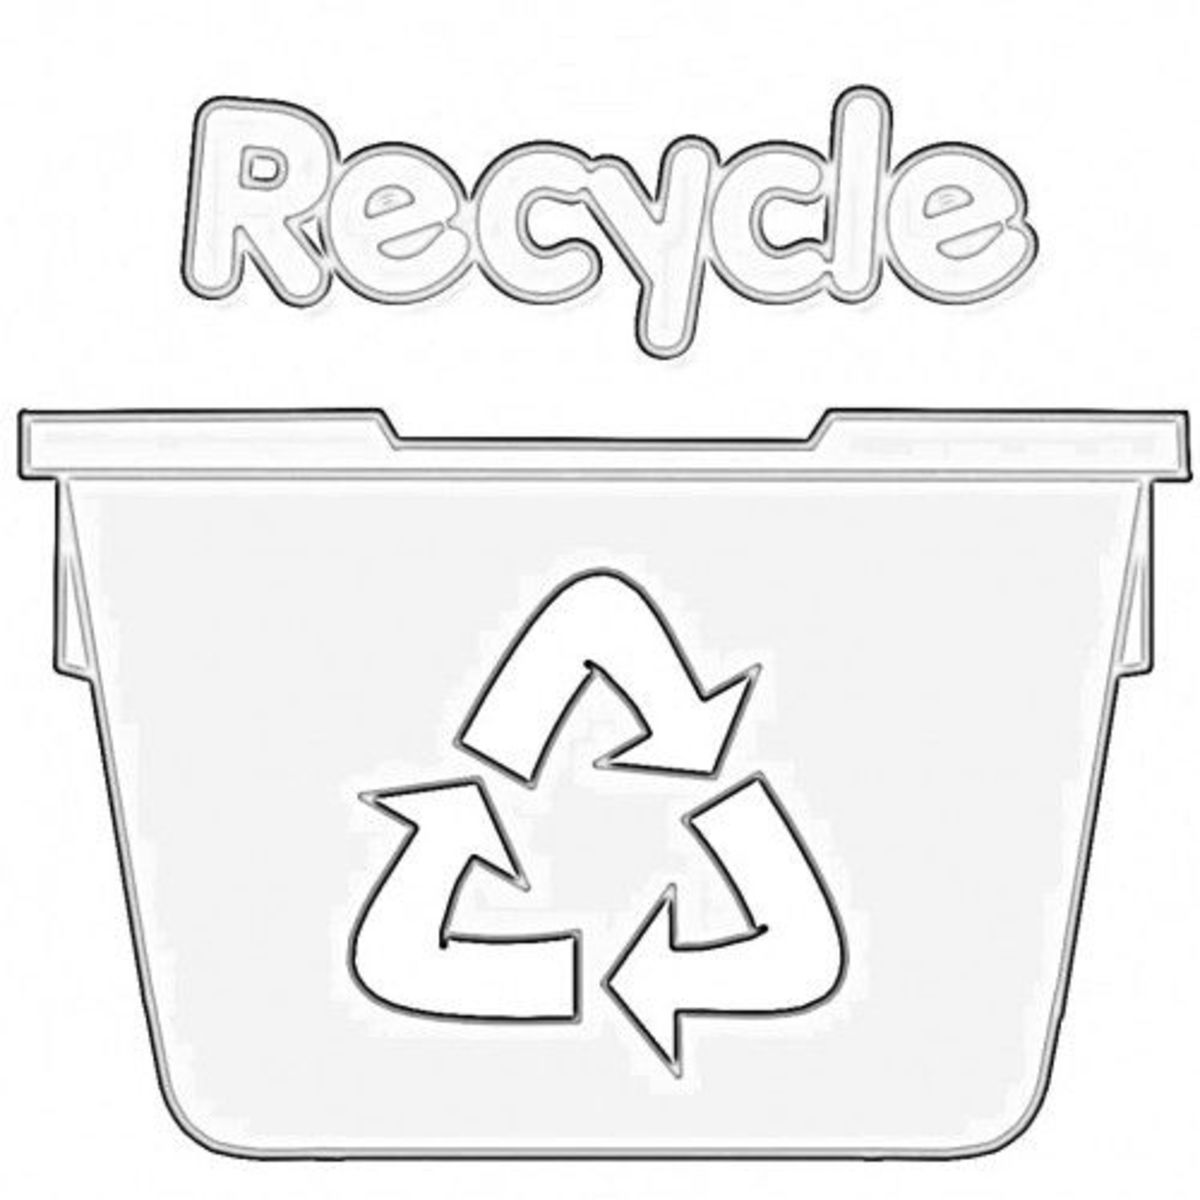 Worksheets Recycling For Kids Worksheets recycling worksheets for kids hubpages recycle bin coloring page